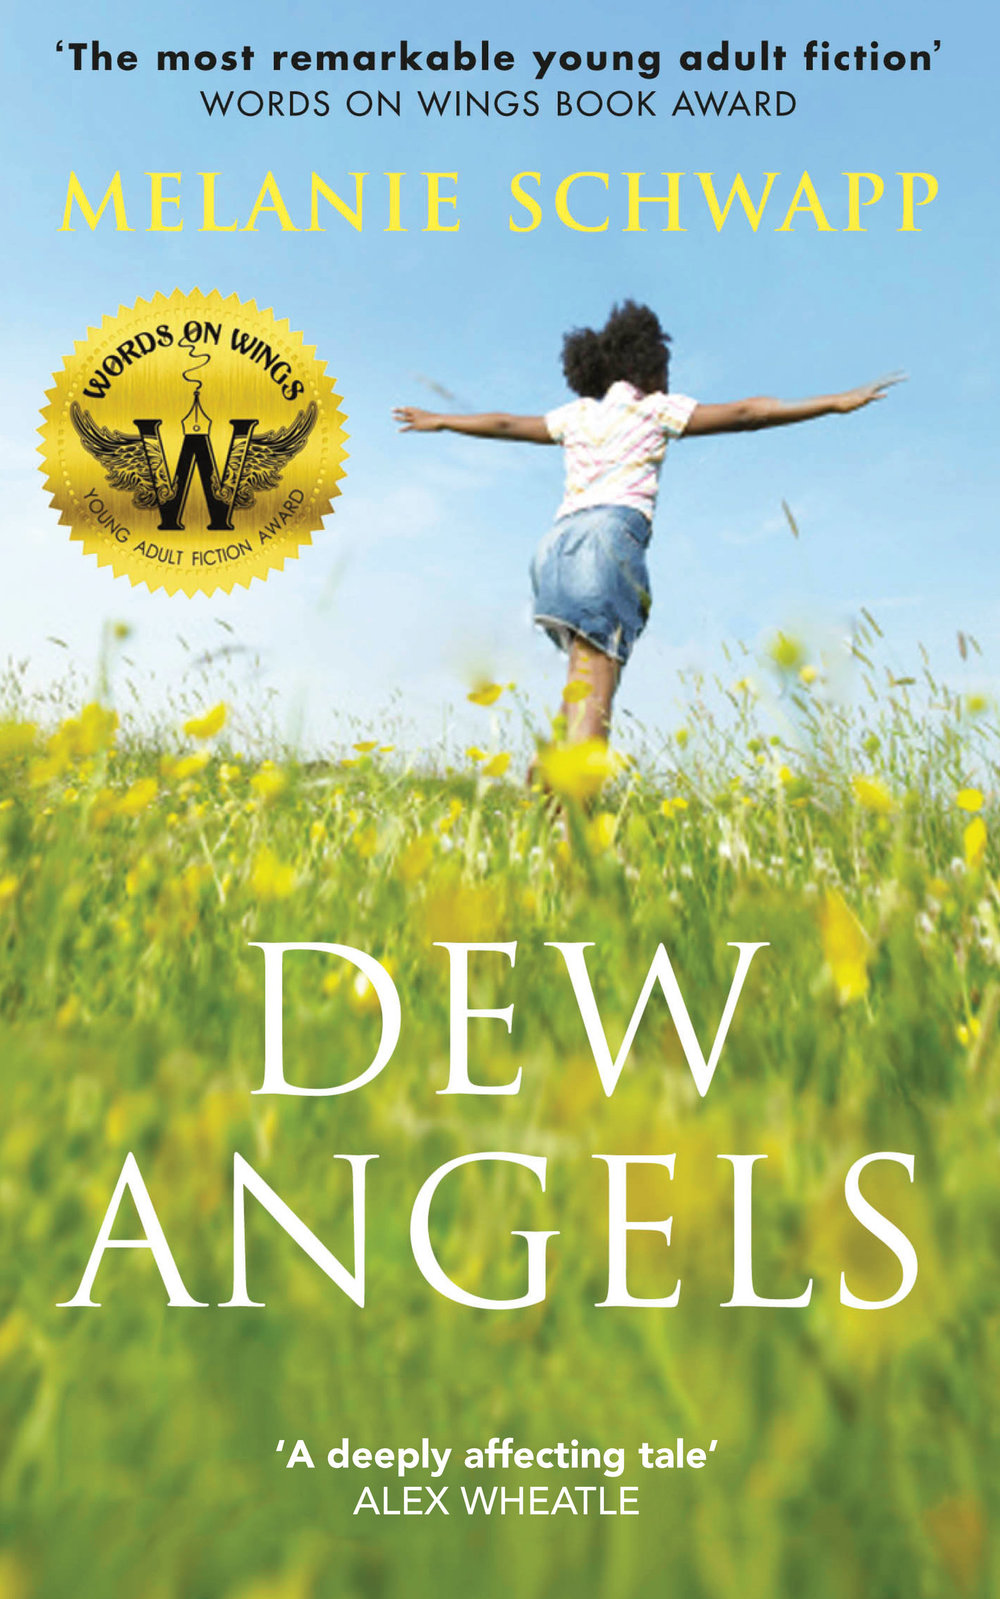 the only Jamaican written and young adult targeted book to make it on the list, 'Dew Angels' did so with no bias. Arguably one of the most talked about Jamaican written books of the 21st century Dew Angels is a spirited tale of Nola Chambers and her life and times a dark skinned girl in a light skinned family. The book has its own interesting way of accounting Nola's experiences in her village and family with heavy notes of prejudice and forms of abuse. Most who've read the originally published copy will tell you Dew Angels is  'An incredible read' (Off The Shelf) 'One awesome book' (Shelf Life).